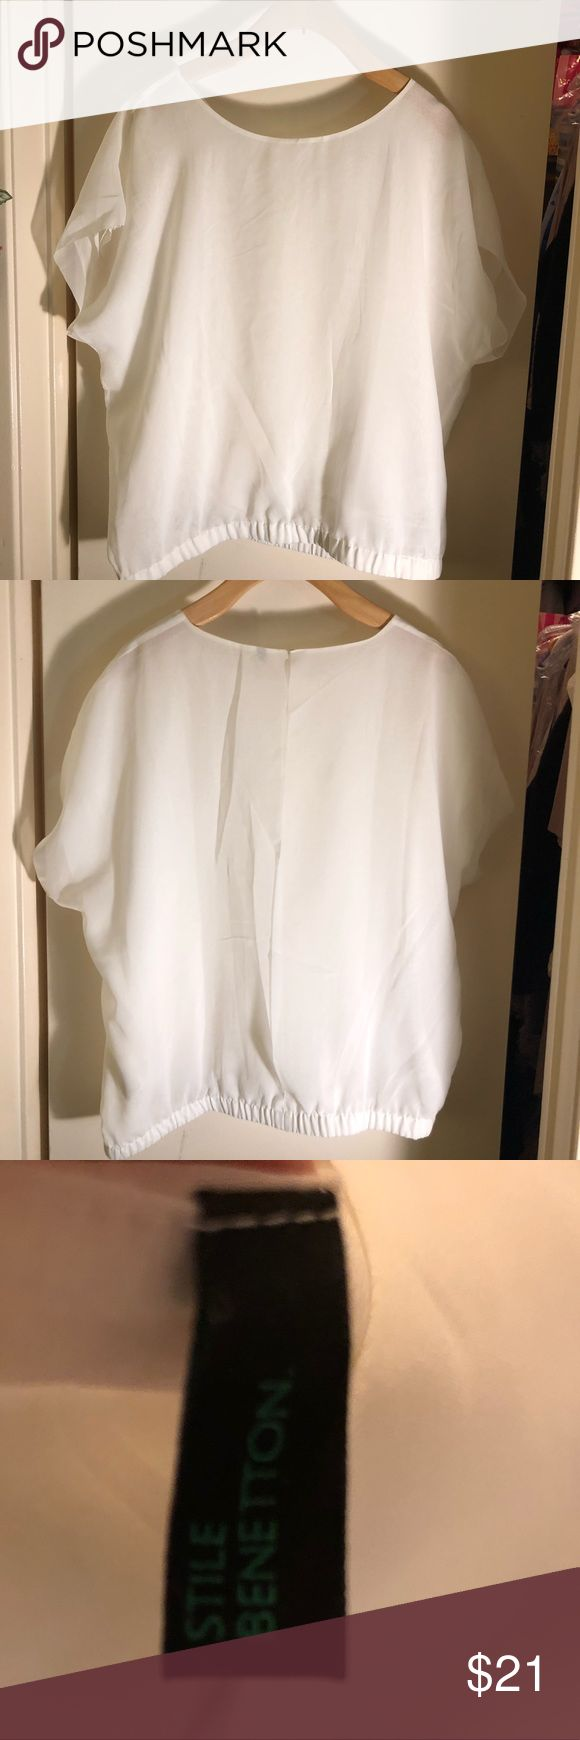 Delicate White Lined Sheer Shirt Perfect for summer. I have gently sewn the back since it was all open, but I can easily un-do it for you upon request. United Colors Of Benetton Tops Tees - Short Sleeve